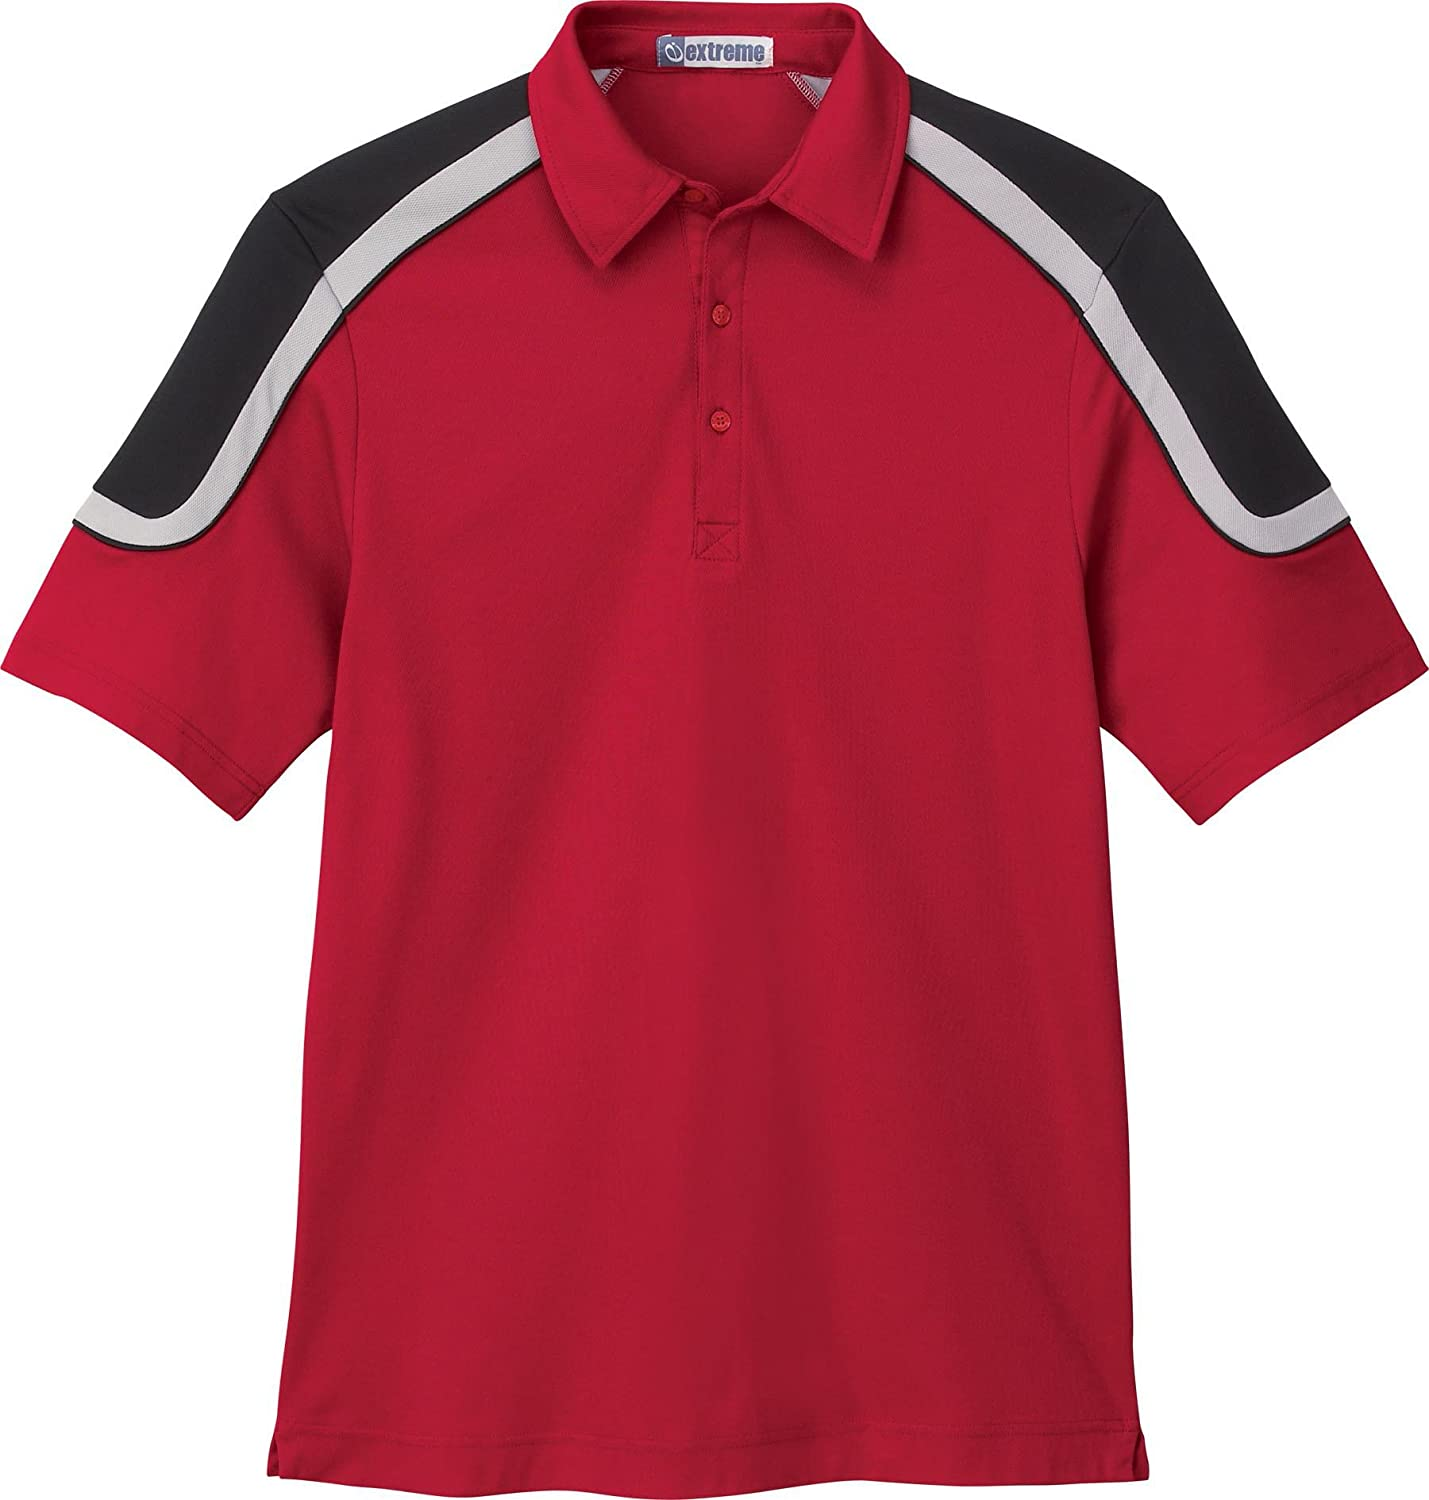 Extreme - Polo - para hombre Rojo CLASSIC RED 850 Medium: Amazon ...